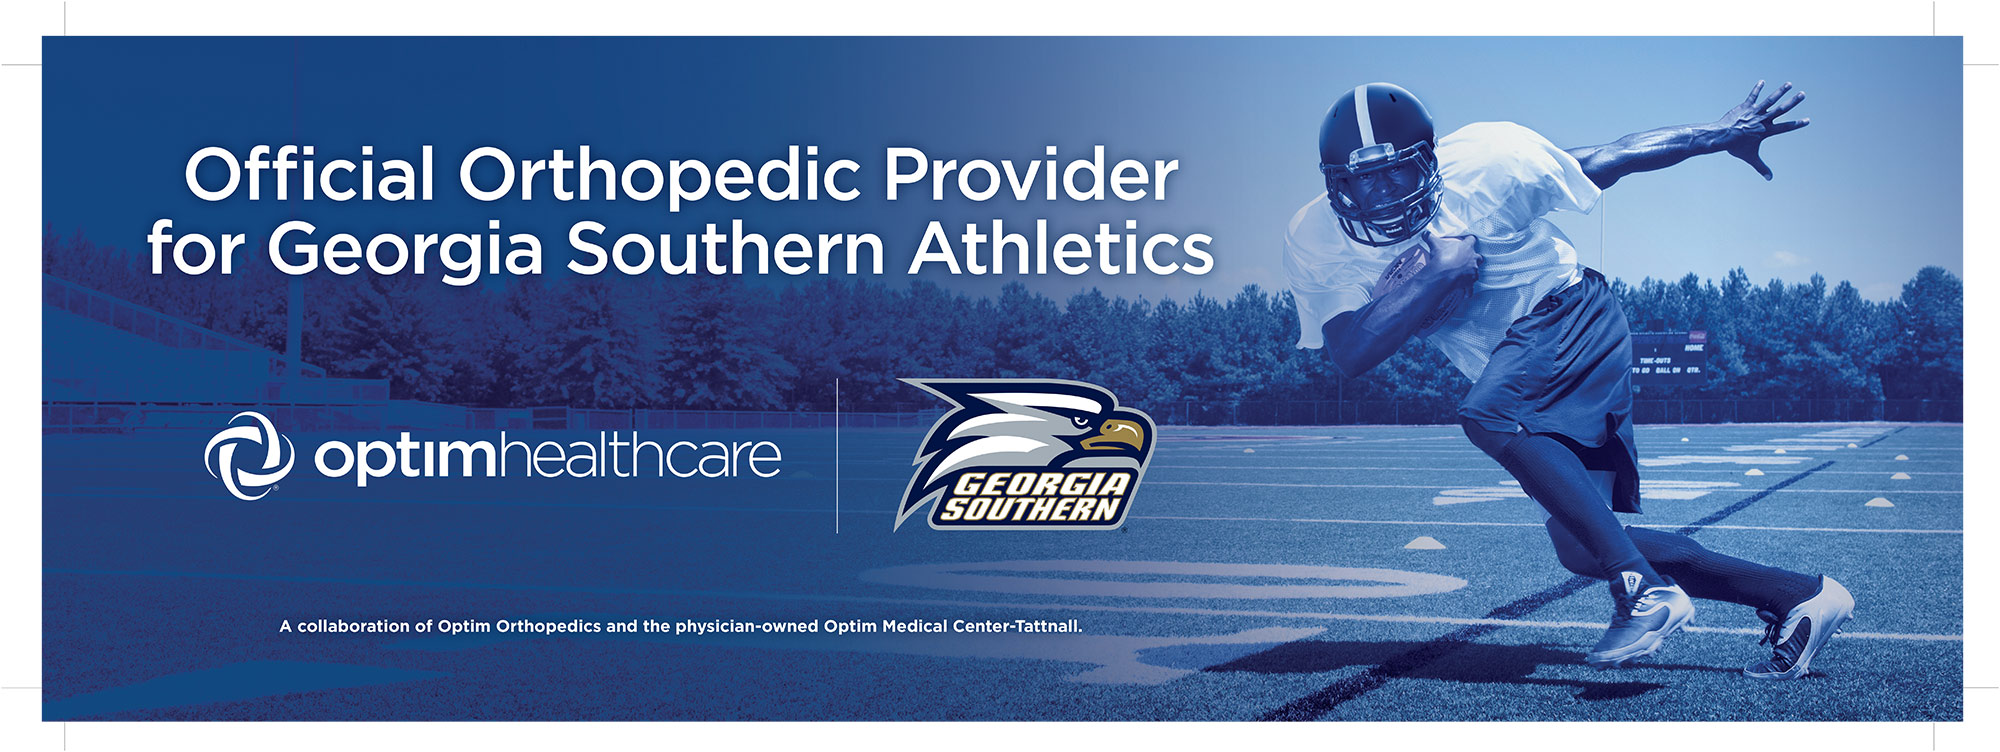 OPTIM-StatesboroTV-GSU-Football-10x30-083116-HR